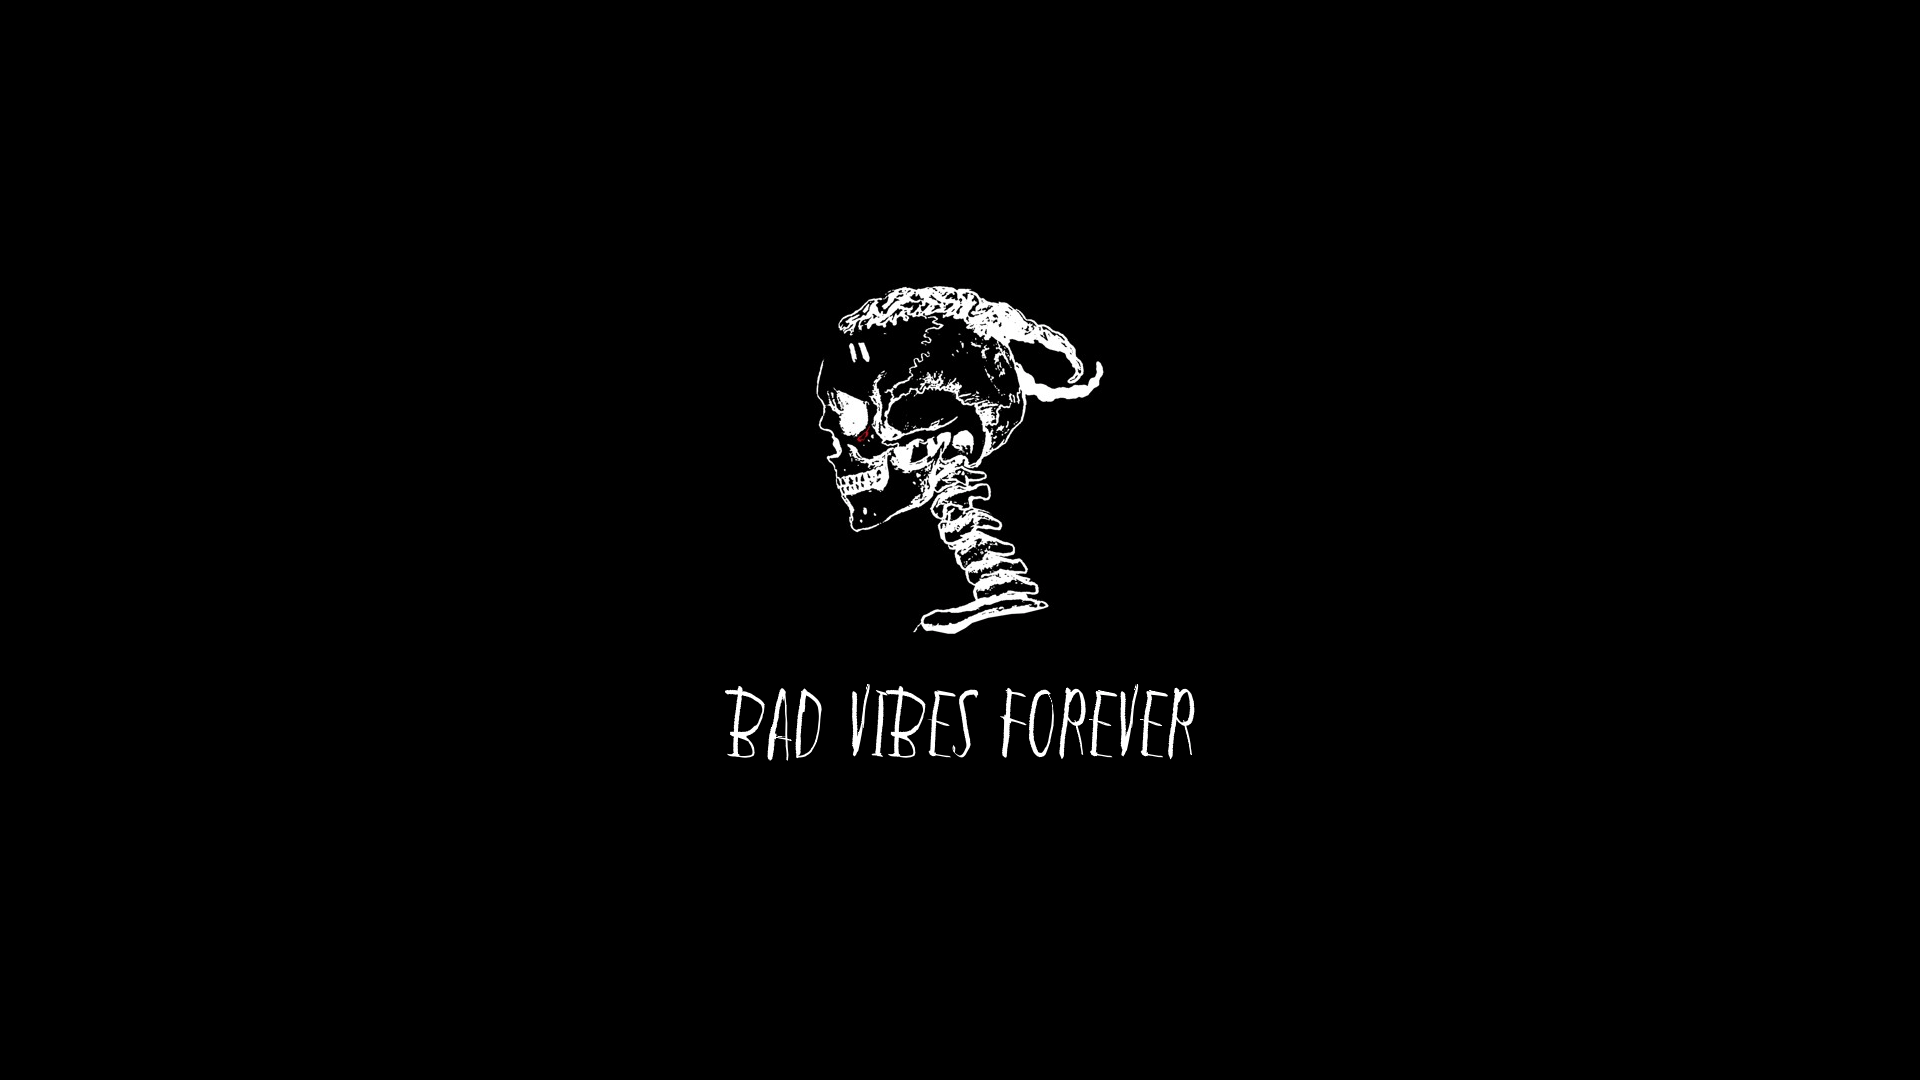 Xxxtentacion Bad Wallpapers Top Free Xxxtentacion Bad Backgrounds Wallpaperaccess